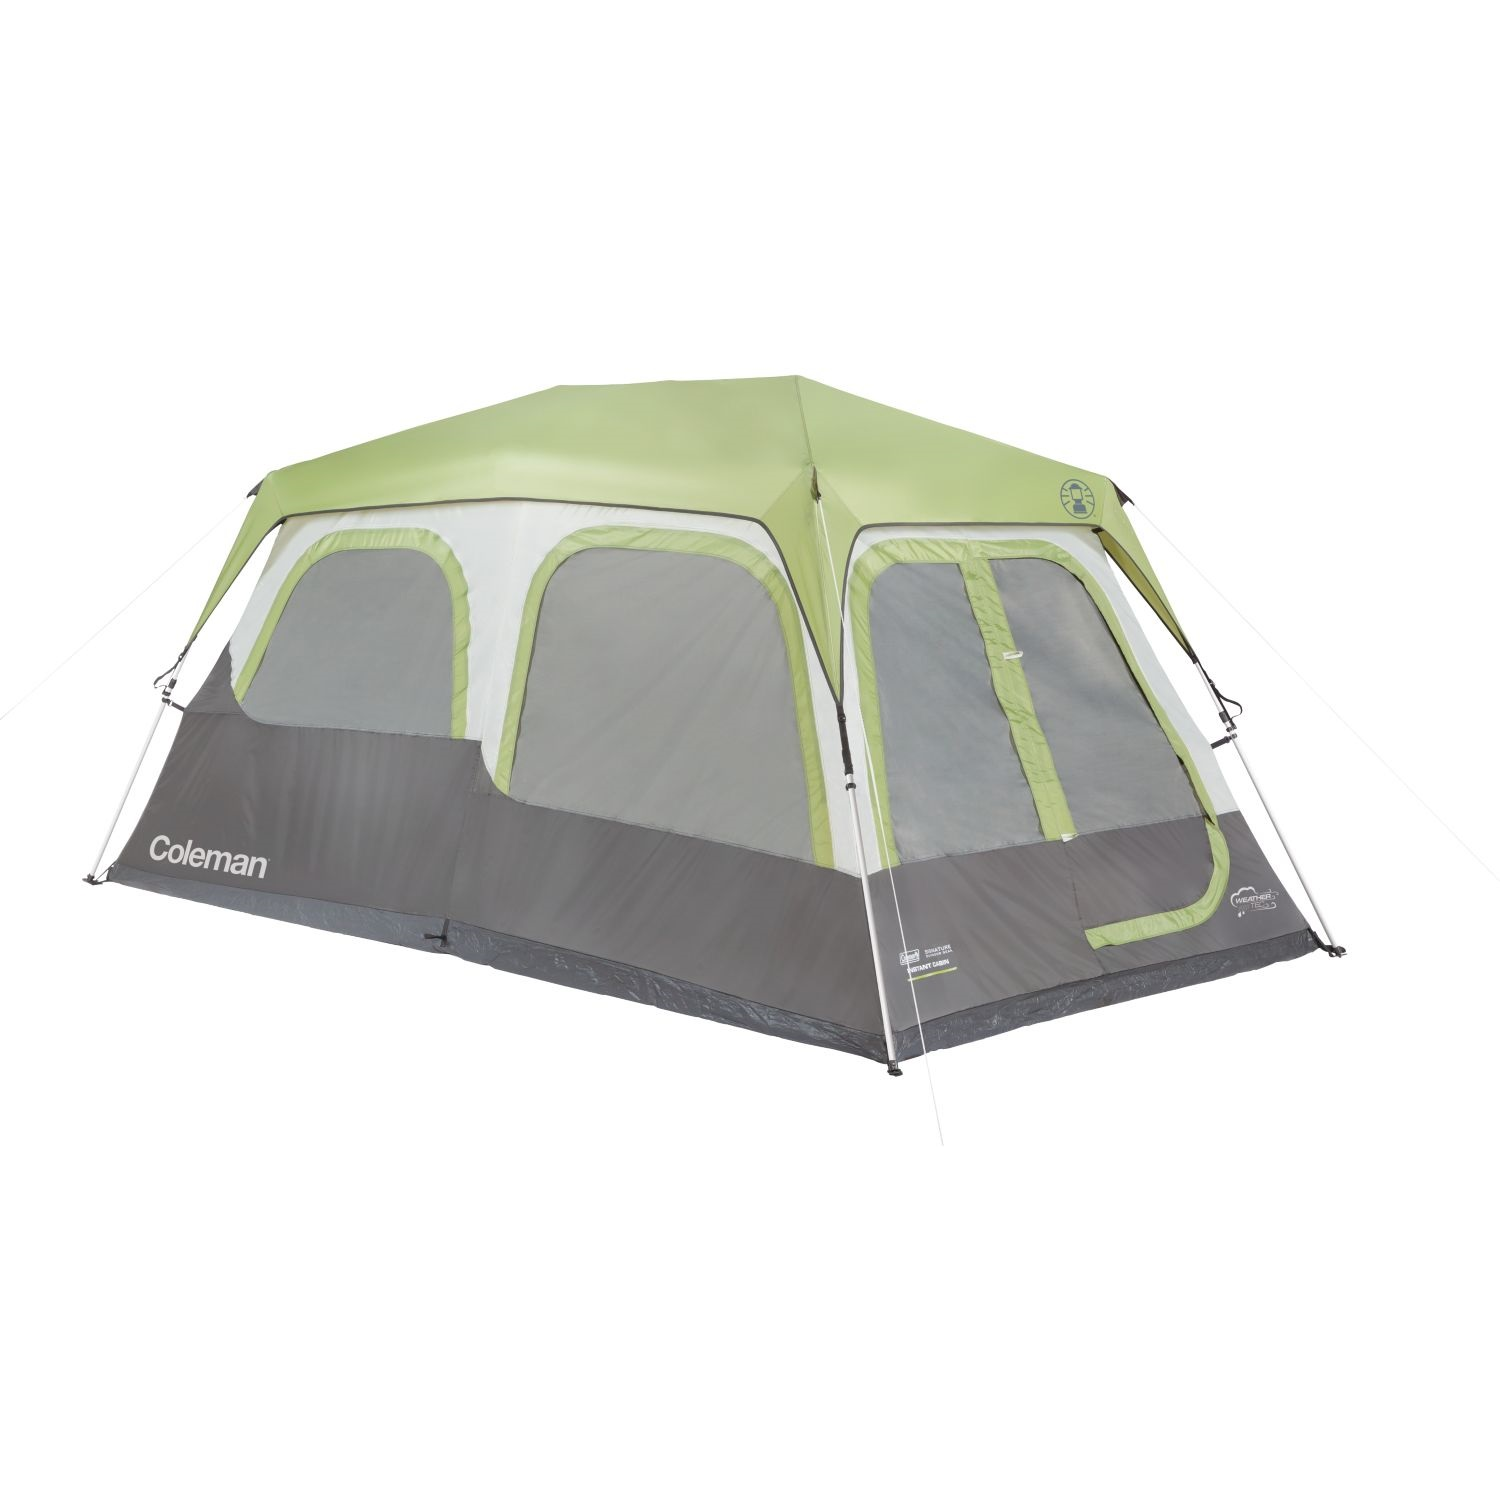 Coleman Tent Instant Cabin 8 Person w/Fly Signature 14x8x6.4